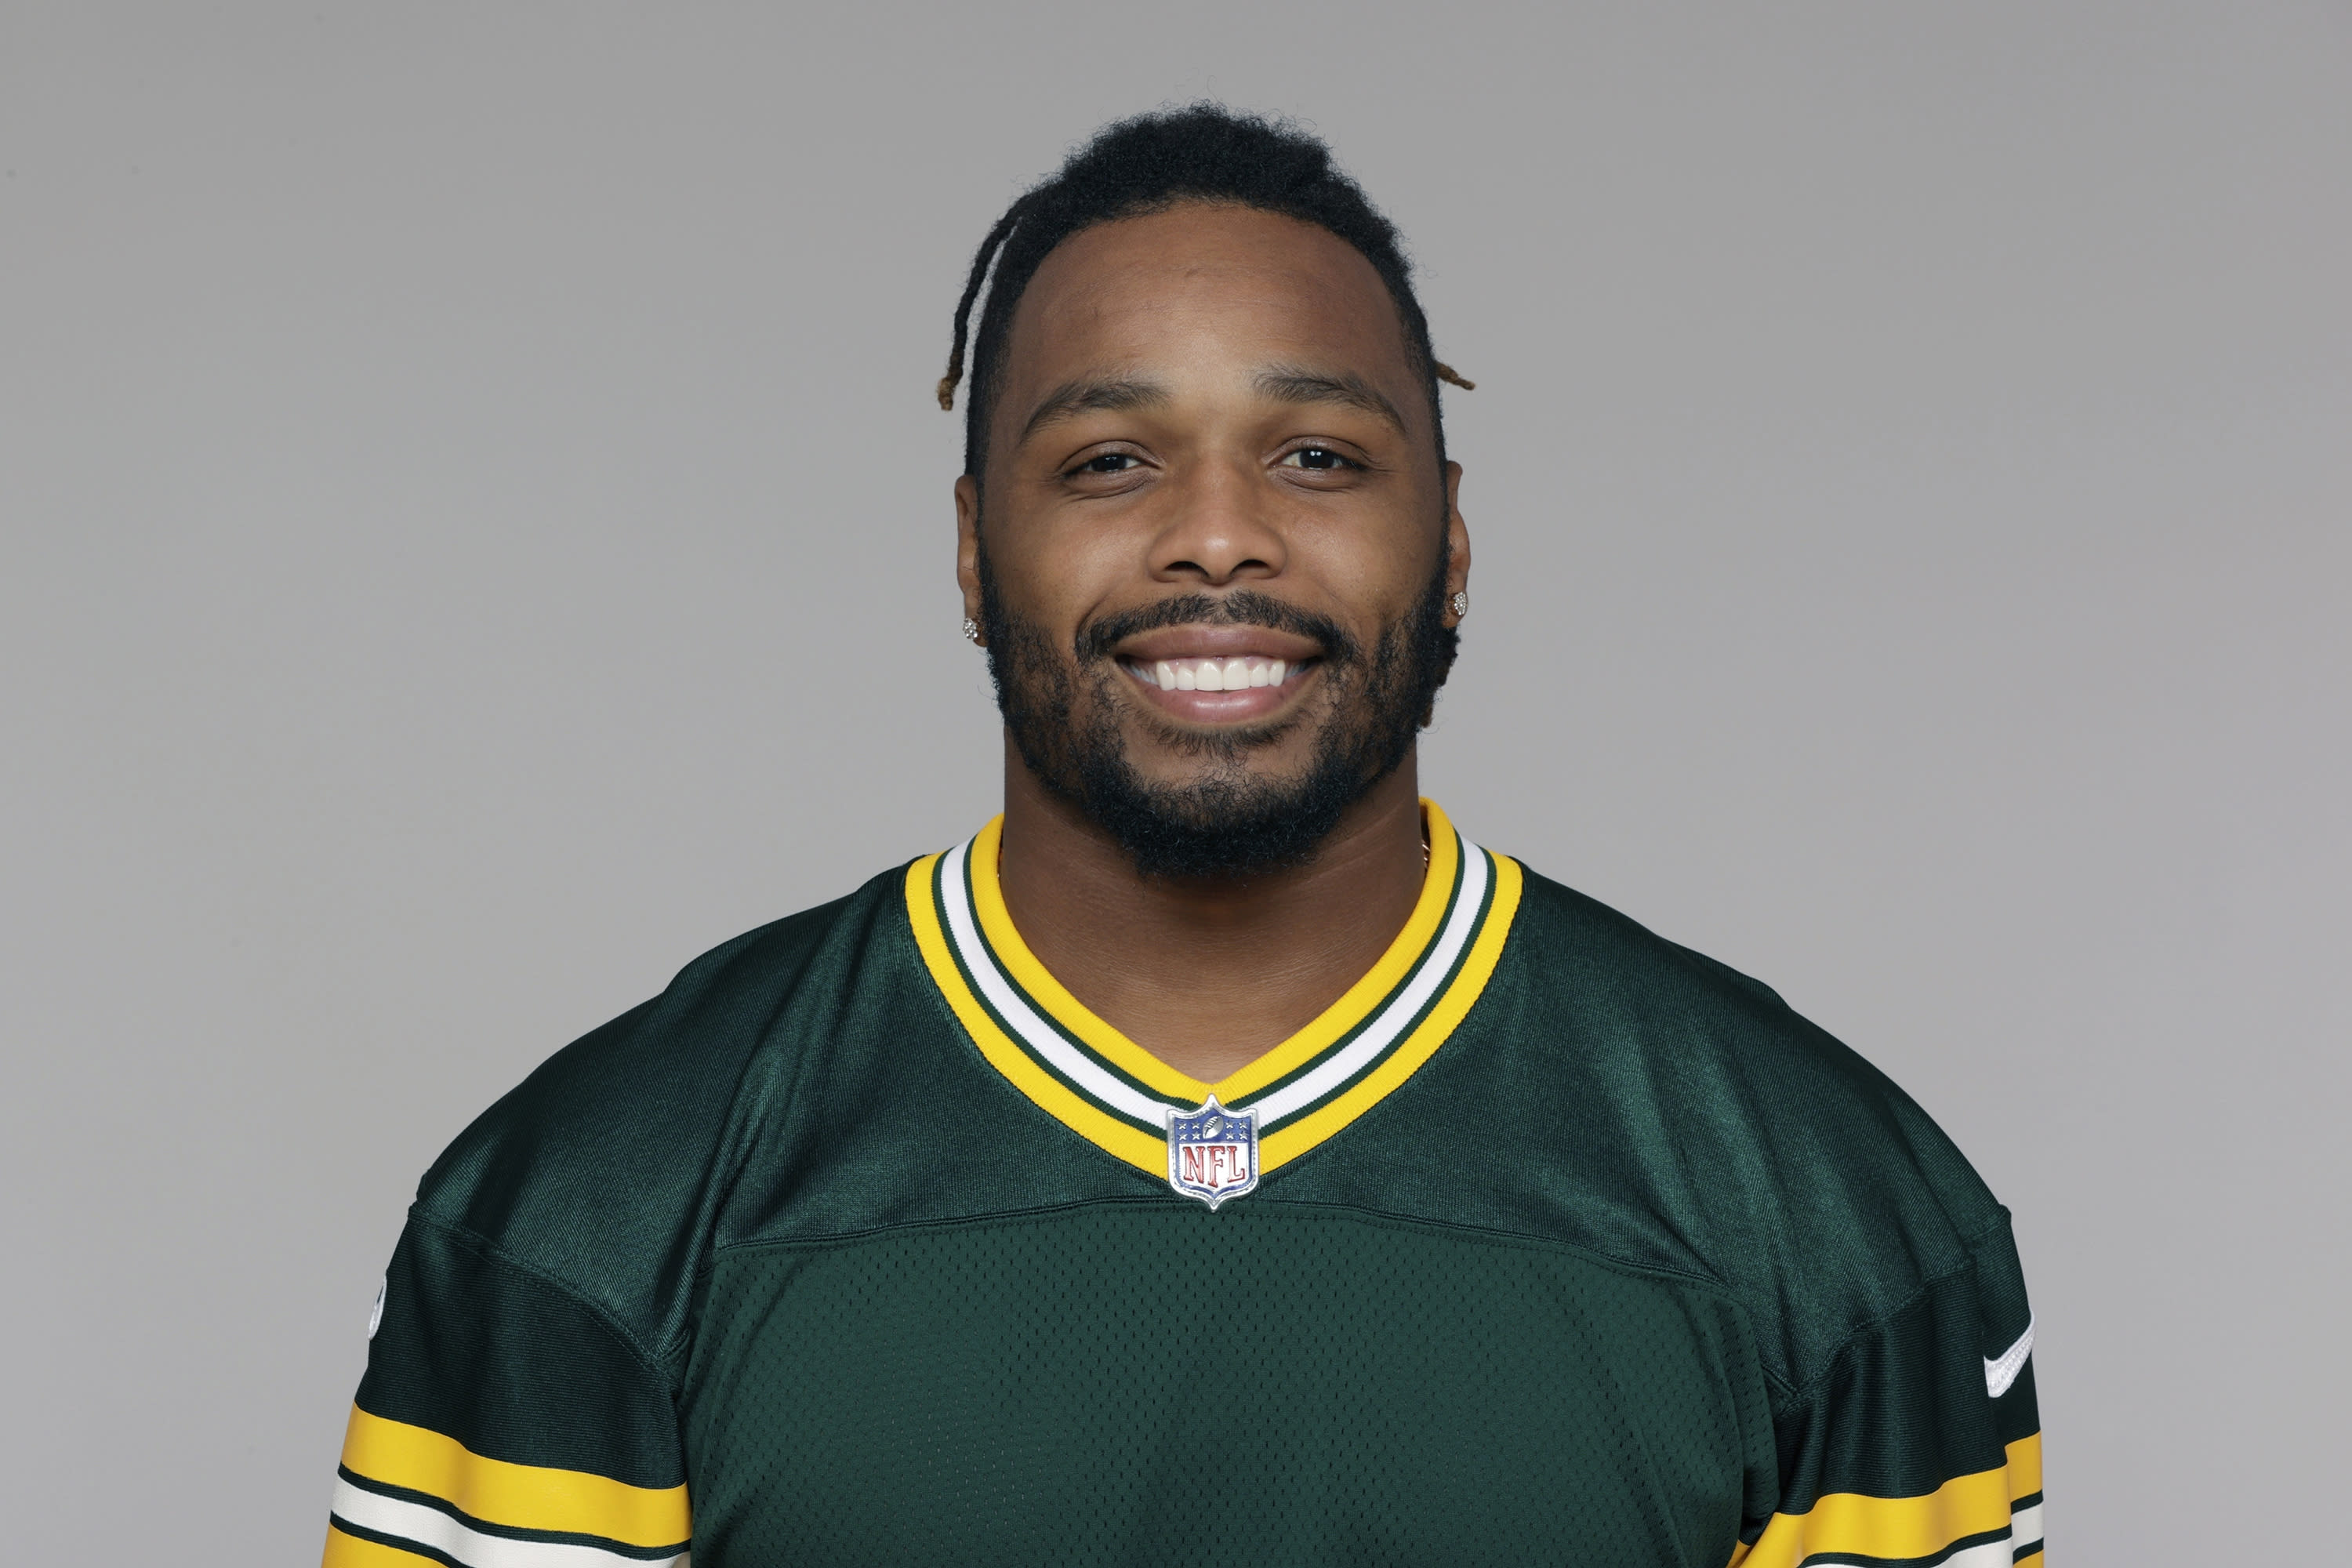 FILE - This is a 2020 photo showing Christian Kirksey of the Green Bay Packers NFL football team. Packers linebacker Christian Kirksey was one of the NFL's most prolific tacklers before injuries caused him to miss most of the last two seasons. Now the former Cleveland Brown is with a new team and eager to boost a run defense that was gashed in last years NFC championship game. (AP Photo/File)